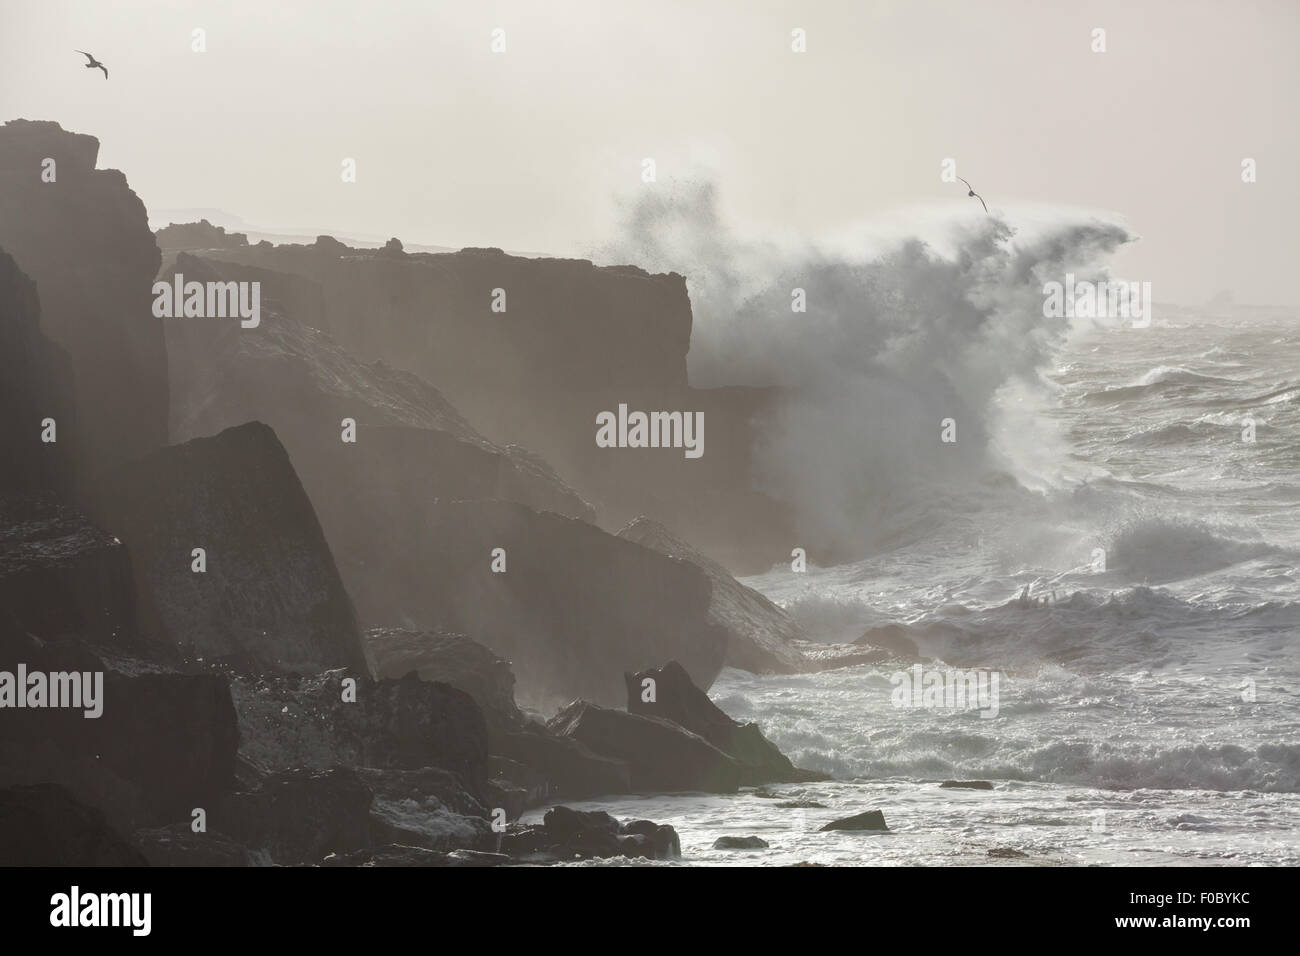 Big waves breaking on cliffs during winter storm on the west coast of Ireland. - Stock Image